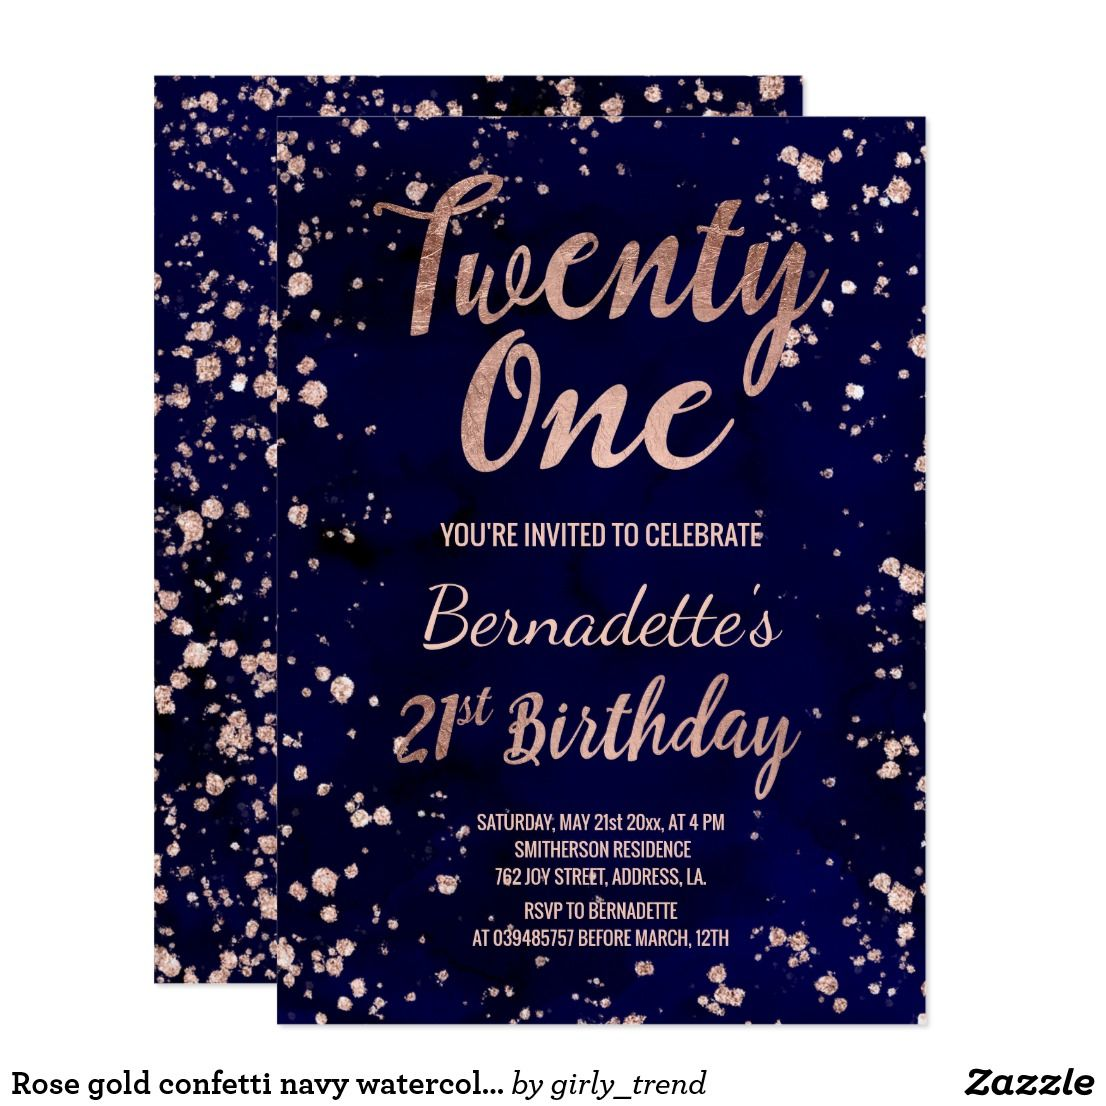 Rose Gold Confetti Navy Watercolor 21st Birthday Invitation Zazzle Com With Images 21st Birthday Invitations Rose Gold Confetti 21st Birthday Cards